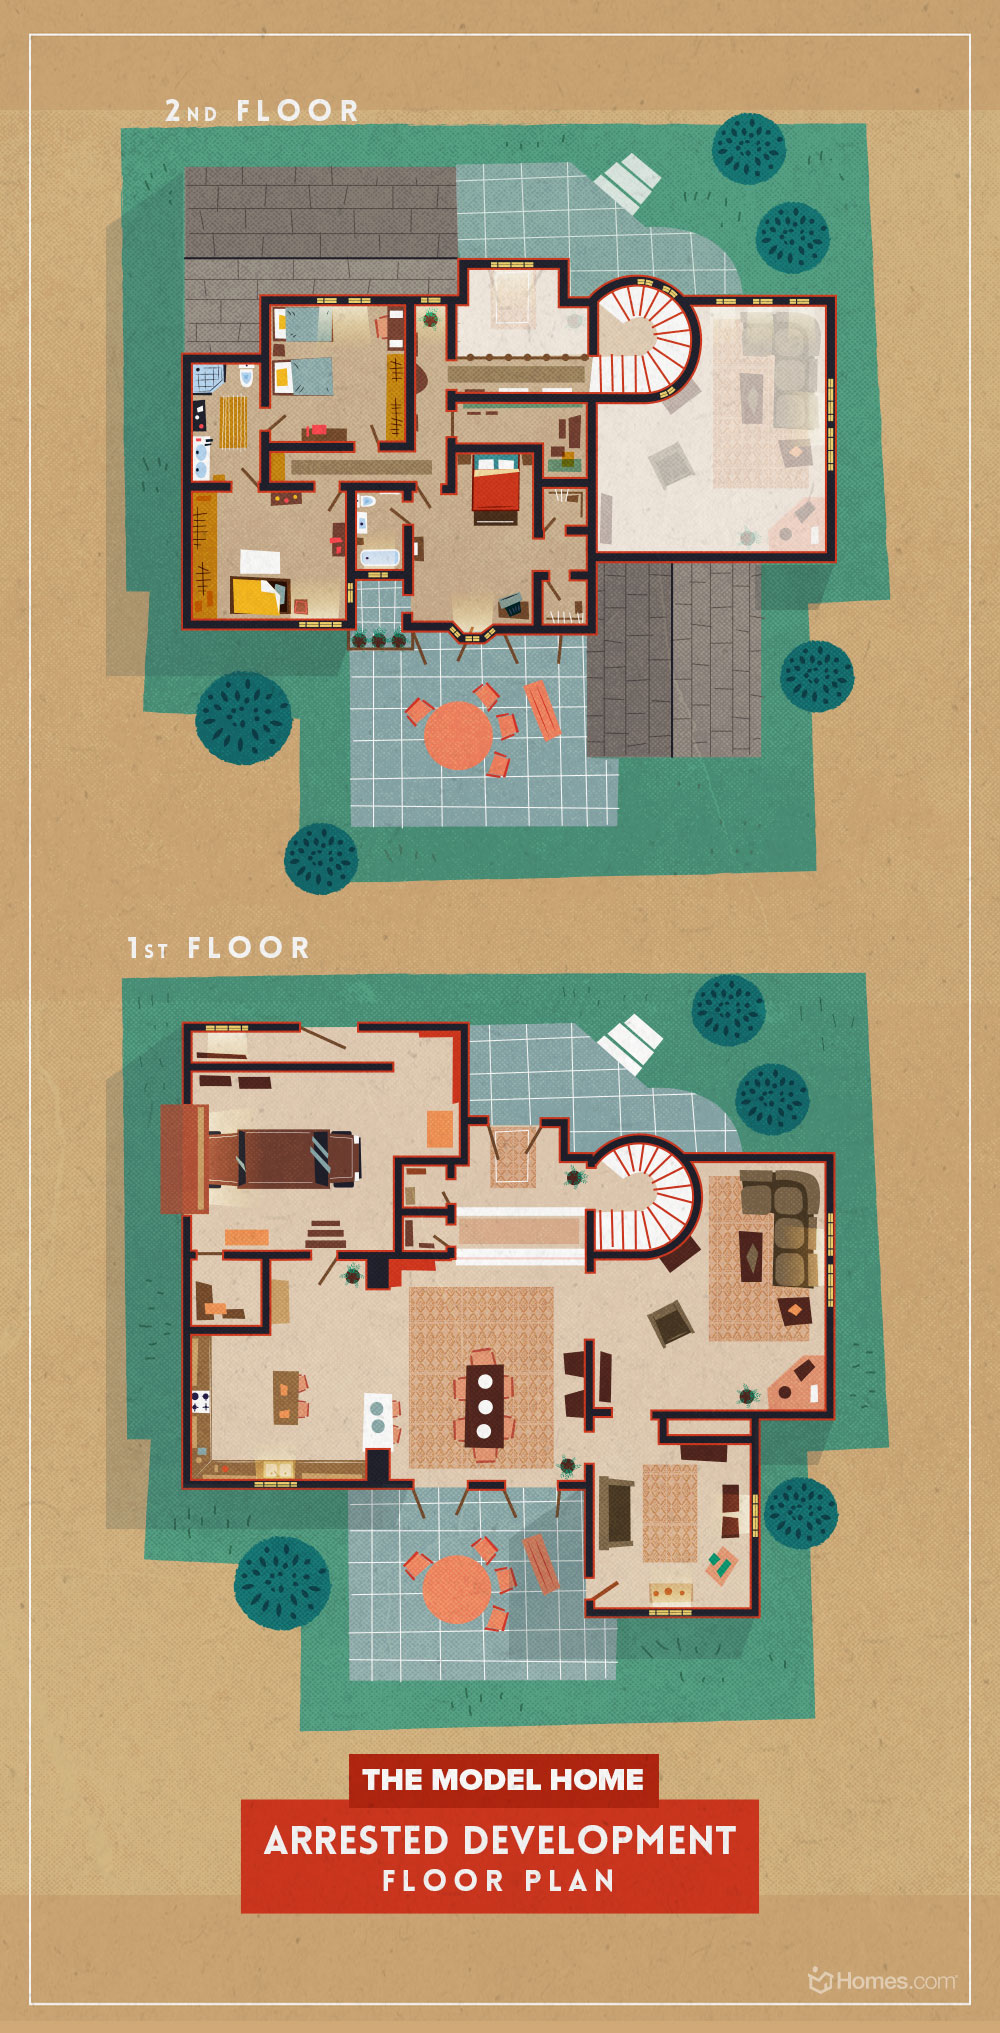 Floor Plans Of Popular TV Show Homes - Arrested Development